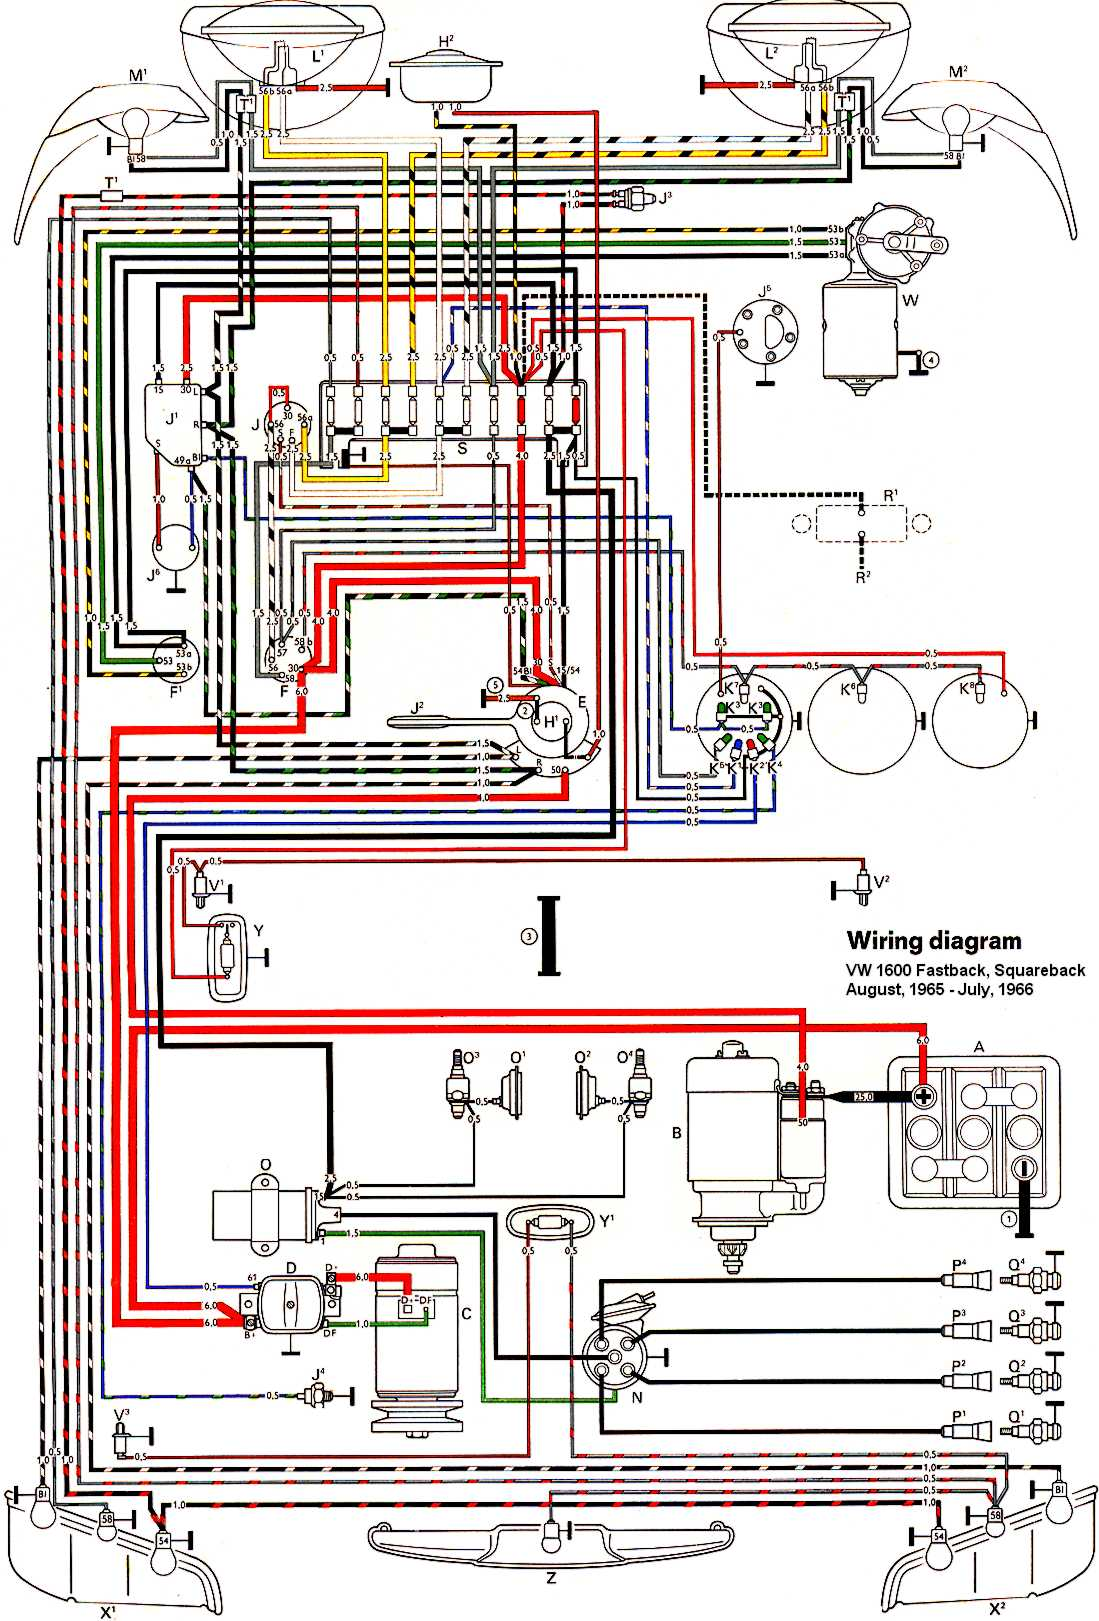 type3_1600_66 vw bus wiring diagram 1965 vw bus wiring diagram \u2022 wiring diagrams 1970 vw bug wiring diagram at eliteediting.co